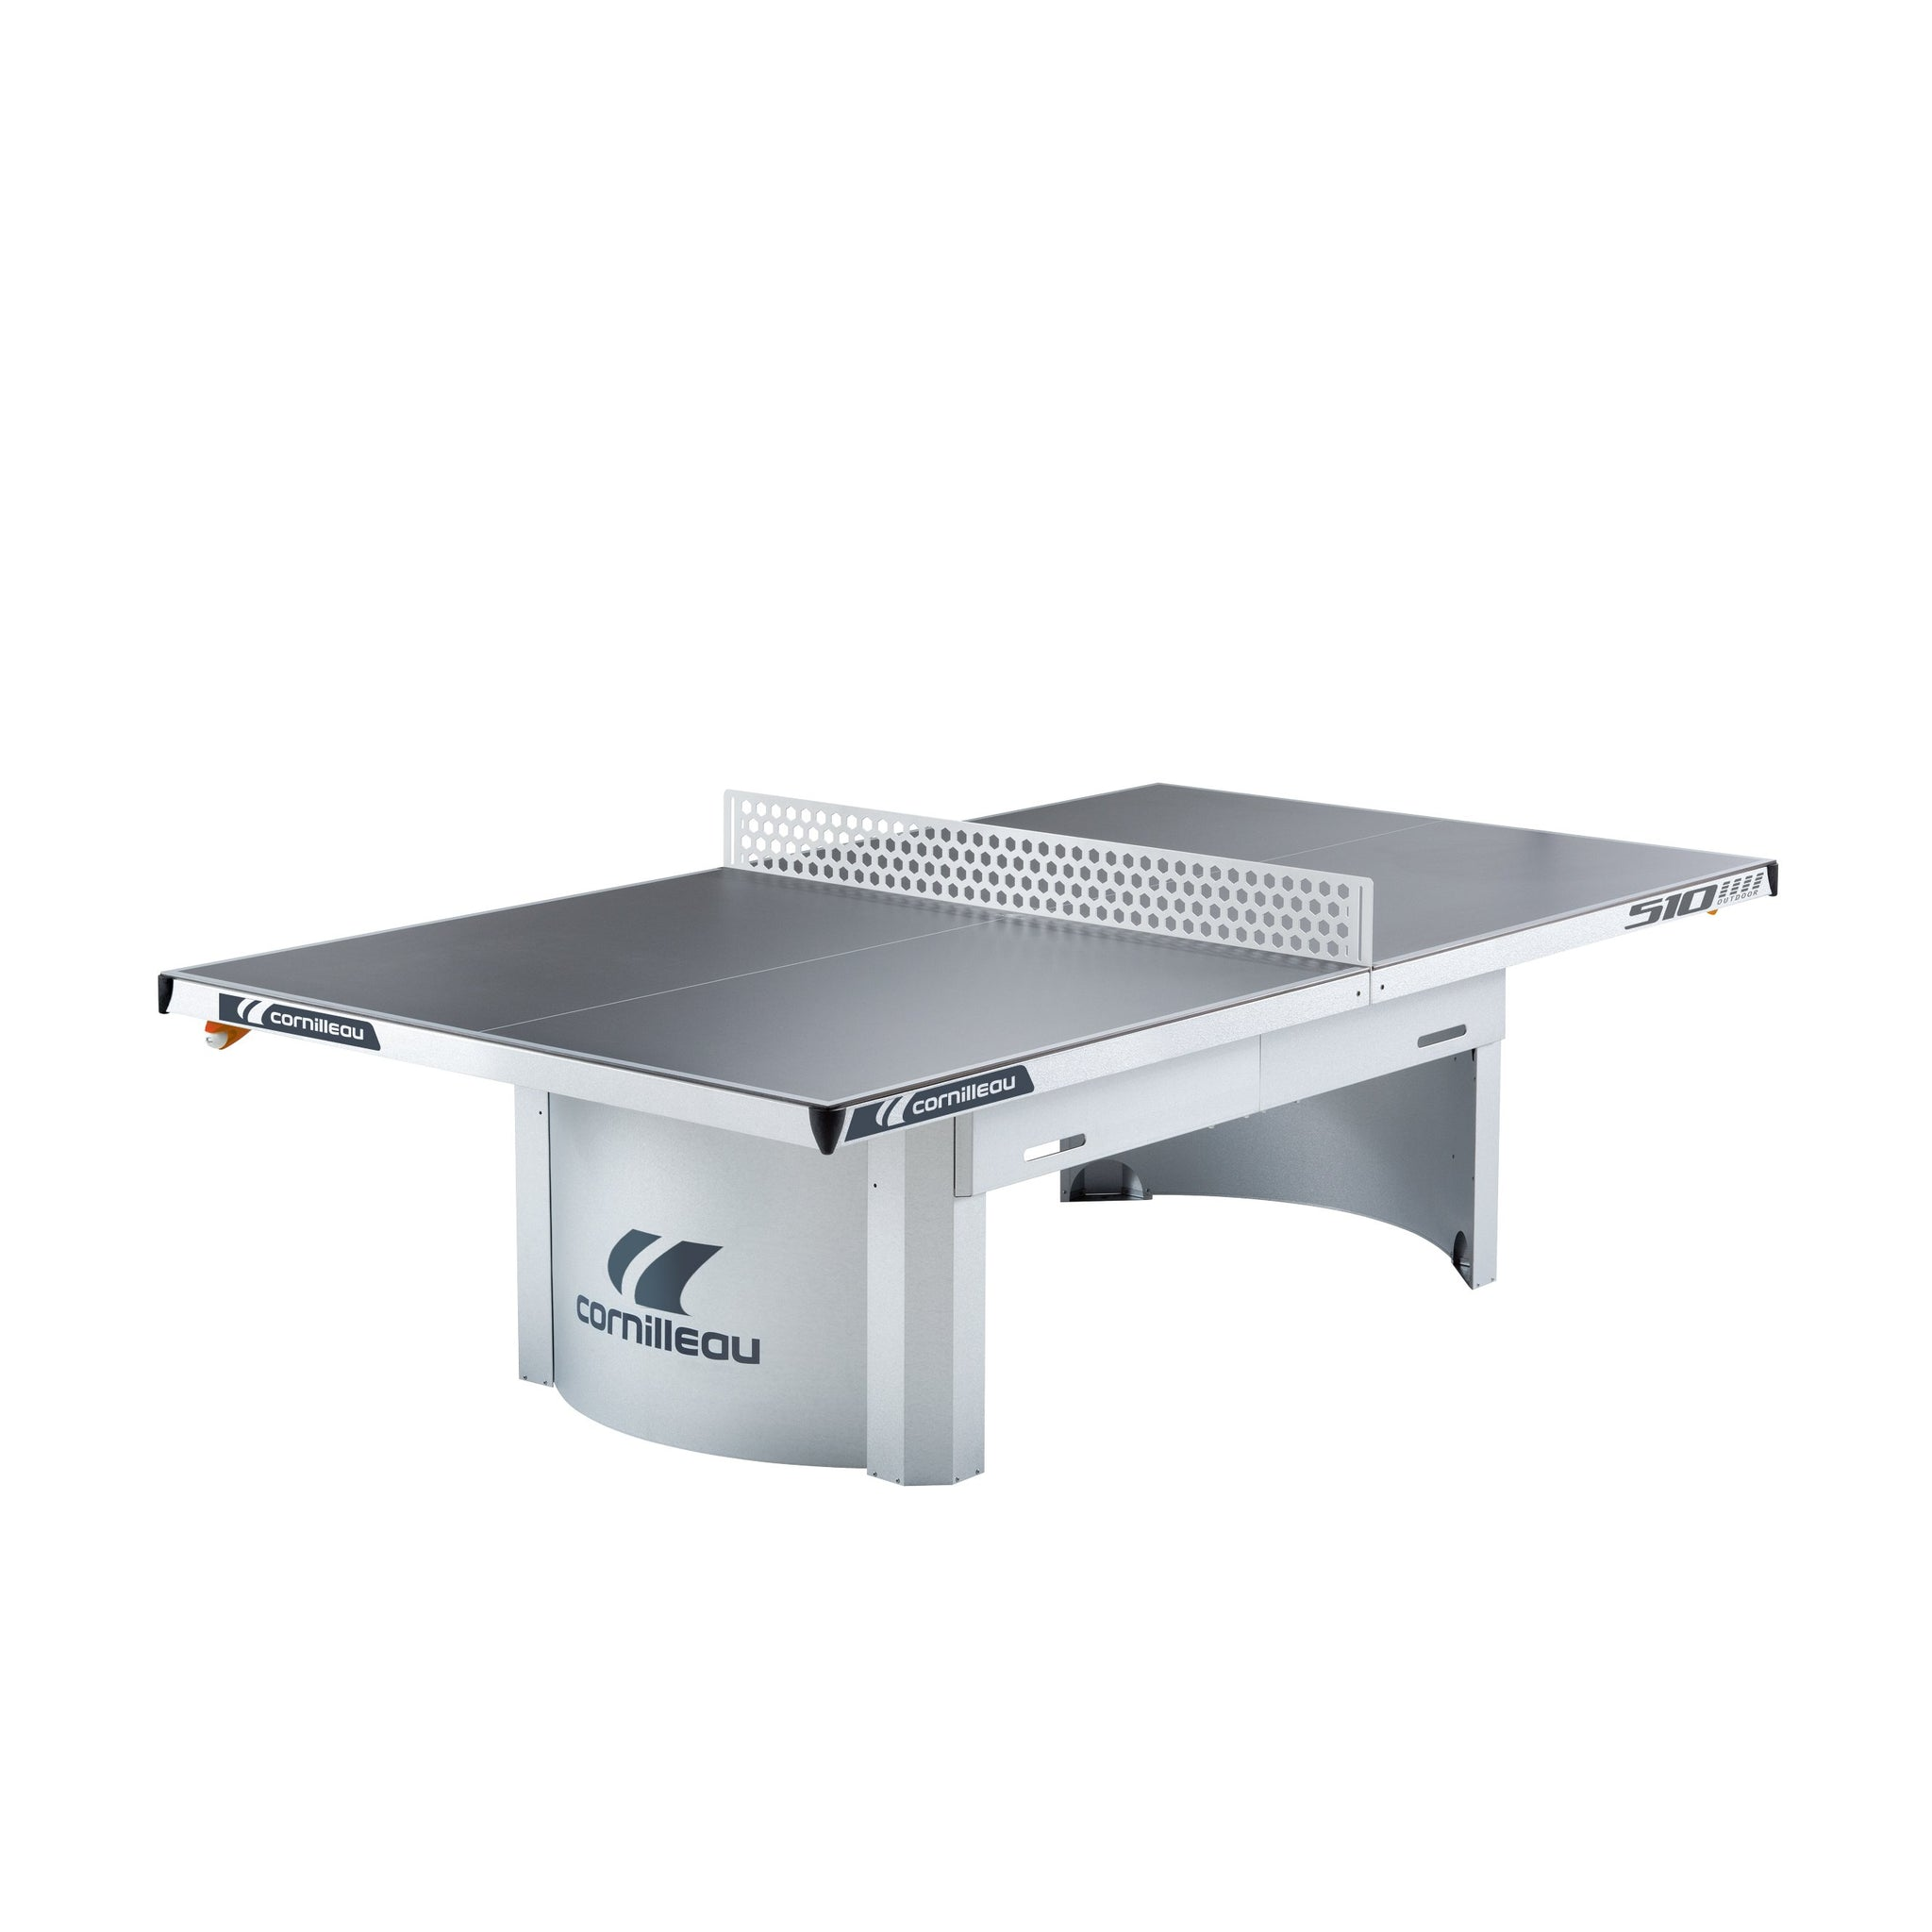 Cornilleau Pro 510m Outdoor Table Tennis in Grey